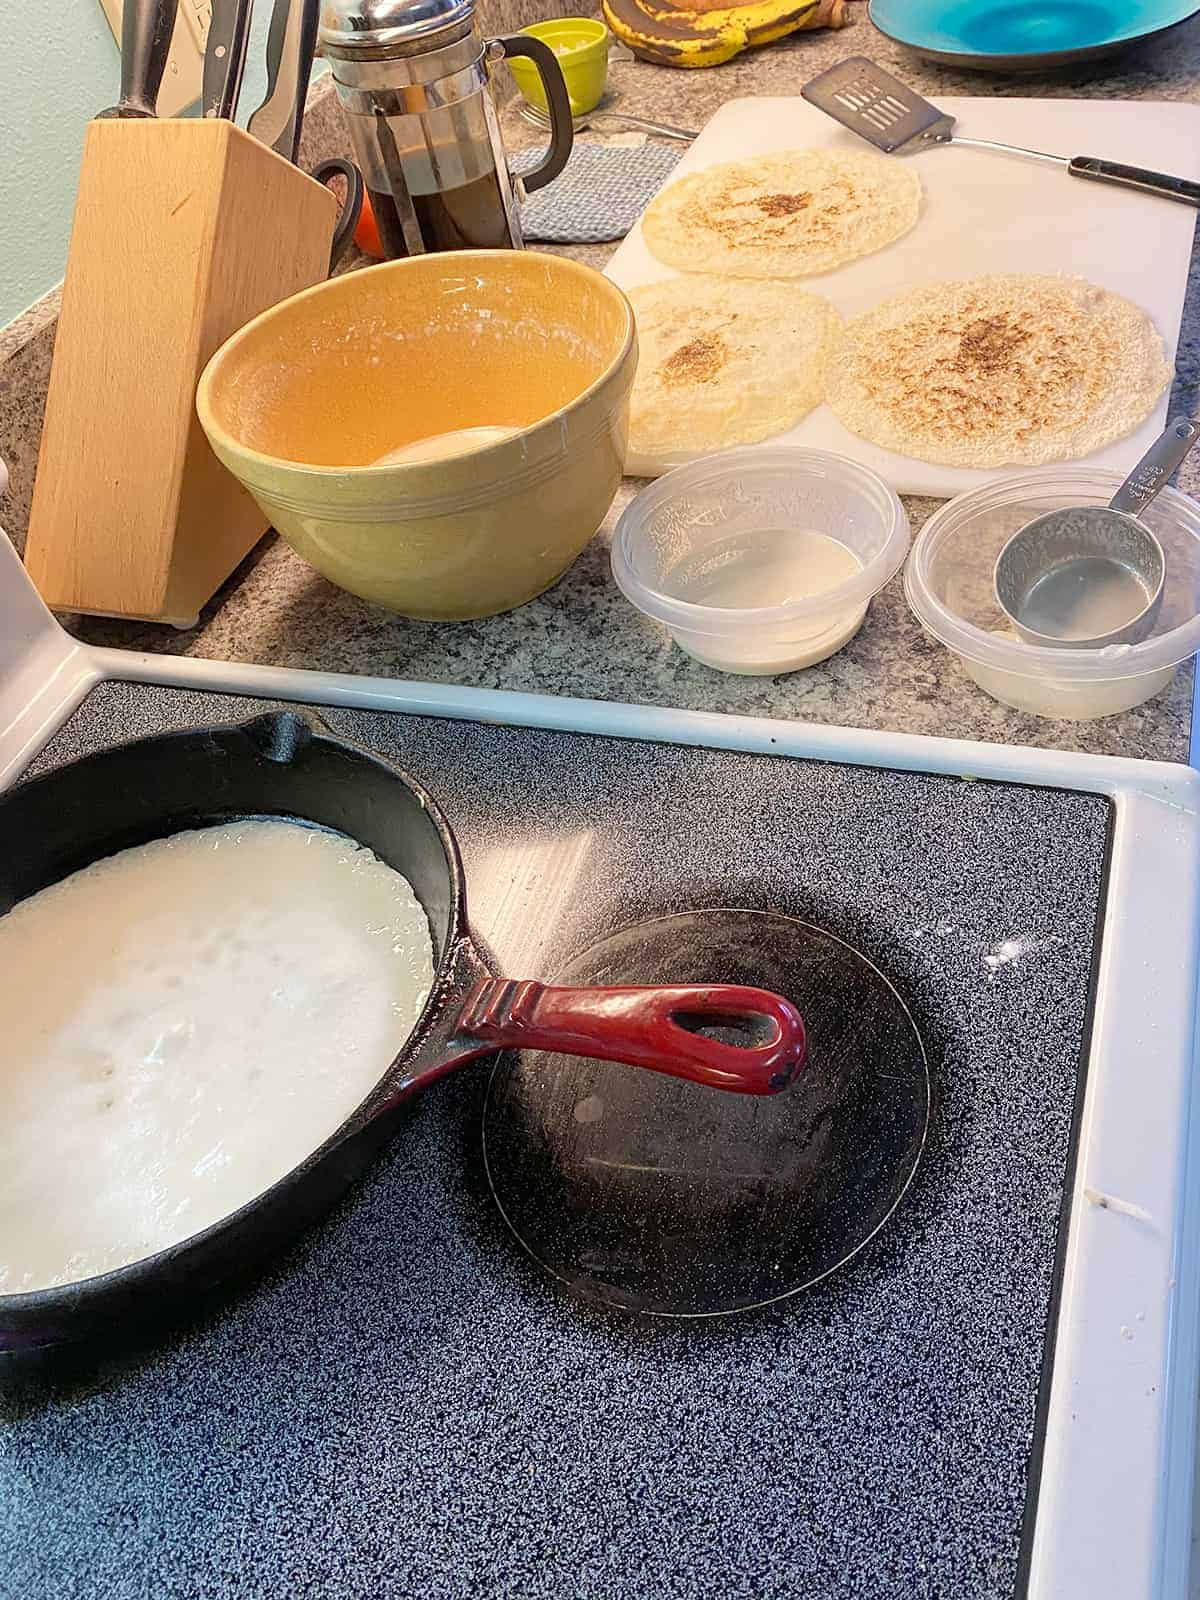 Testaroli frying in a cast iron pan and the batter setup off to the side.